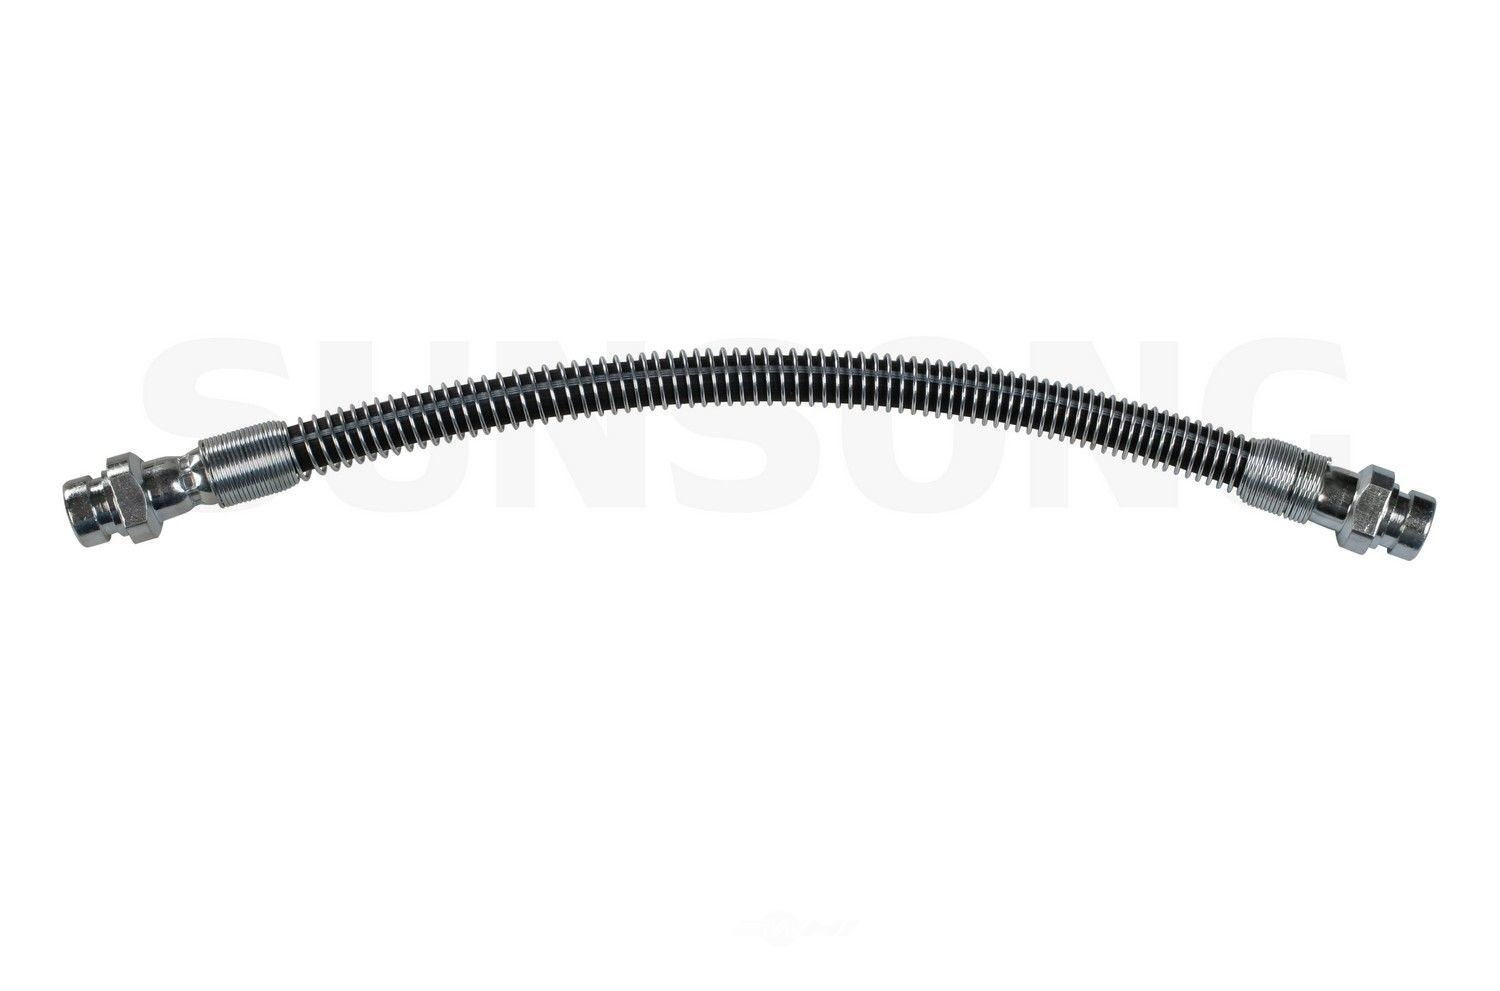 SUNSONG NORTH AMERICA - Brake Hydraulic Hose - SUG 2201160